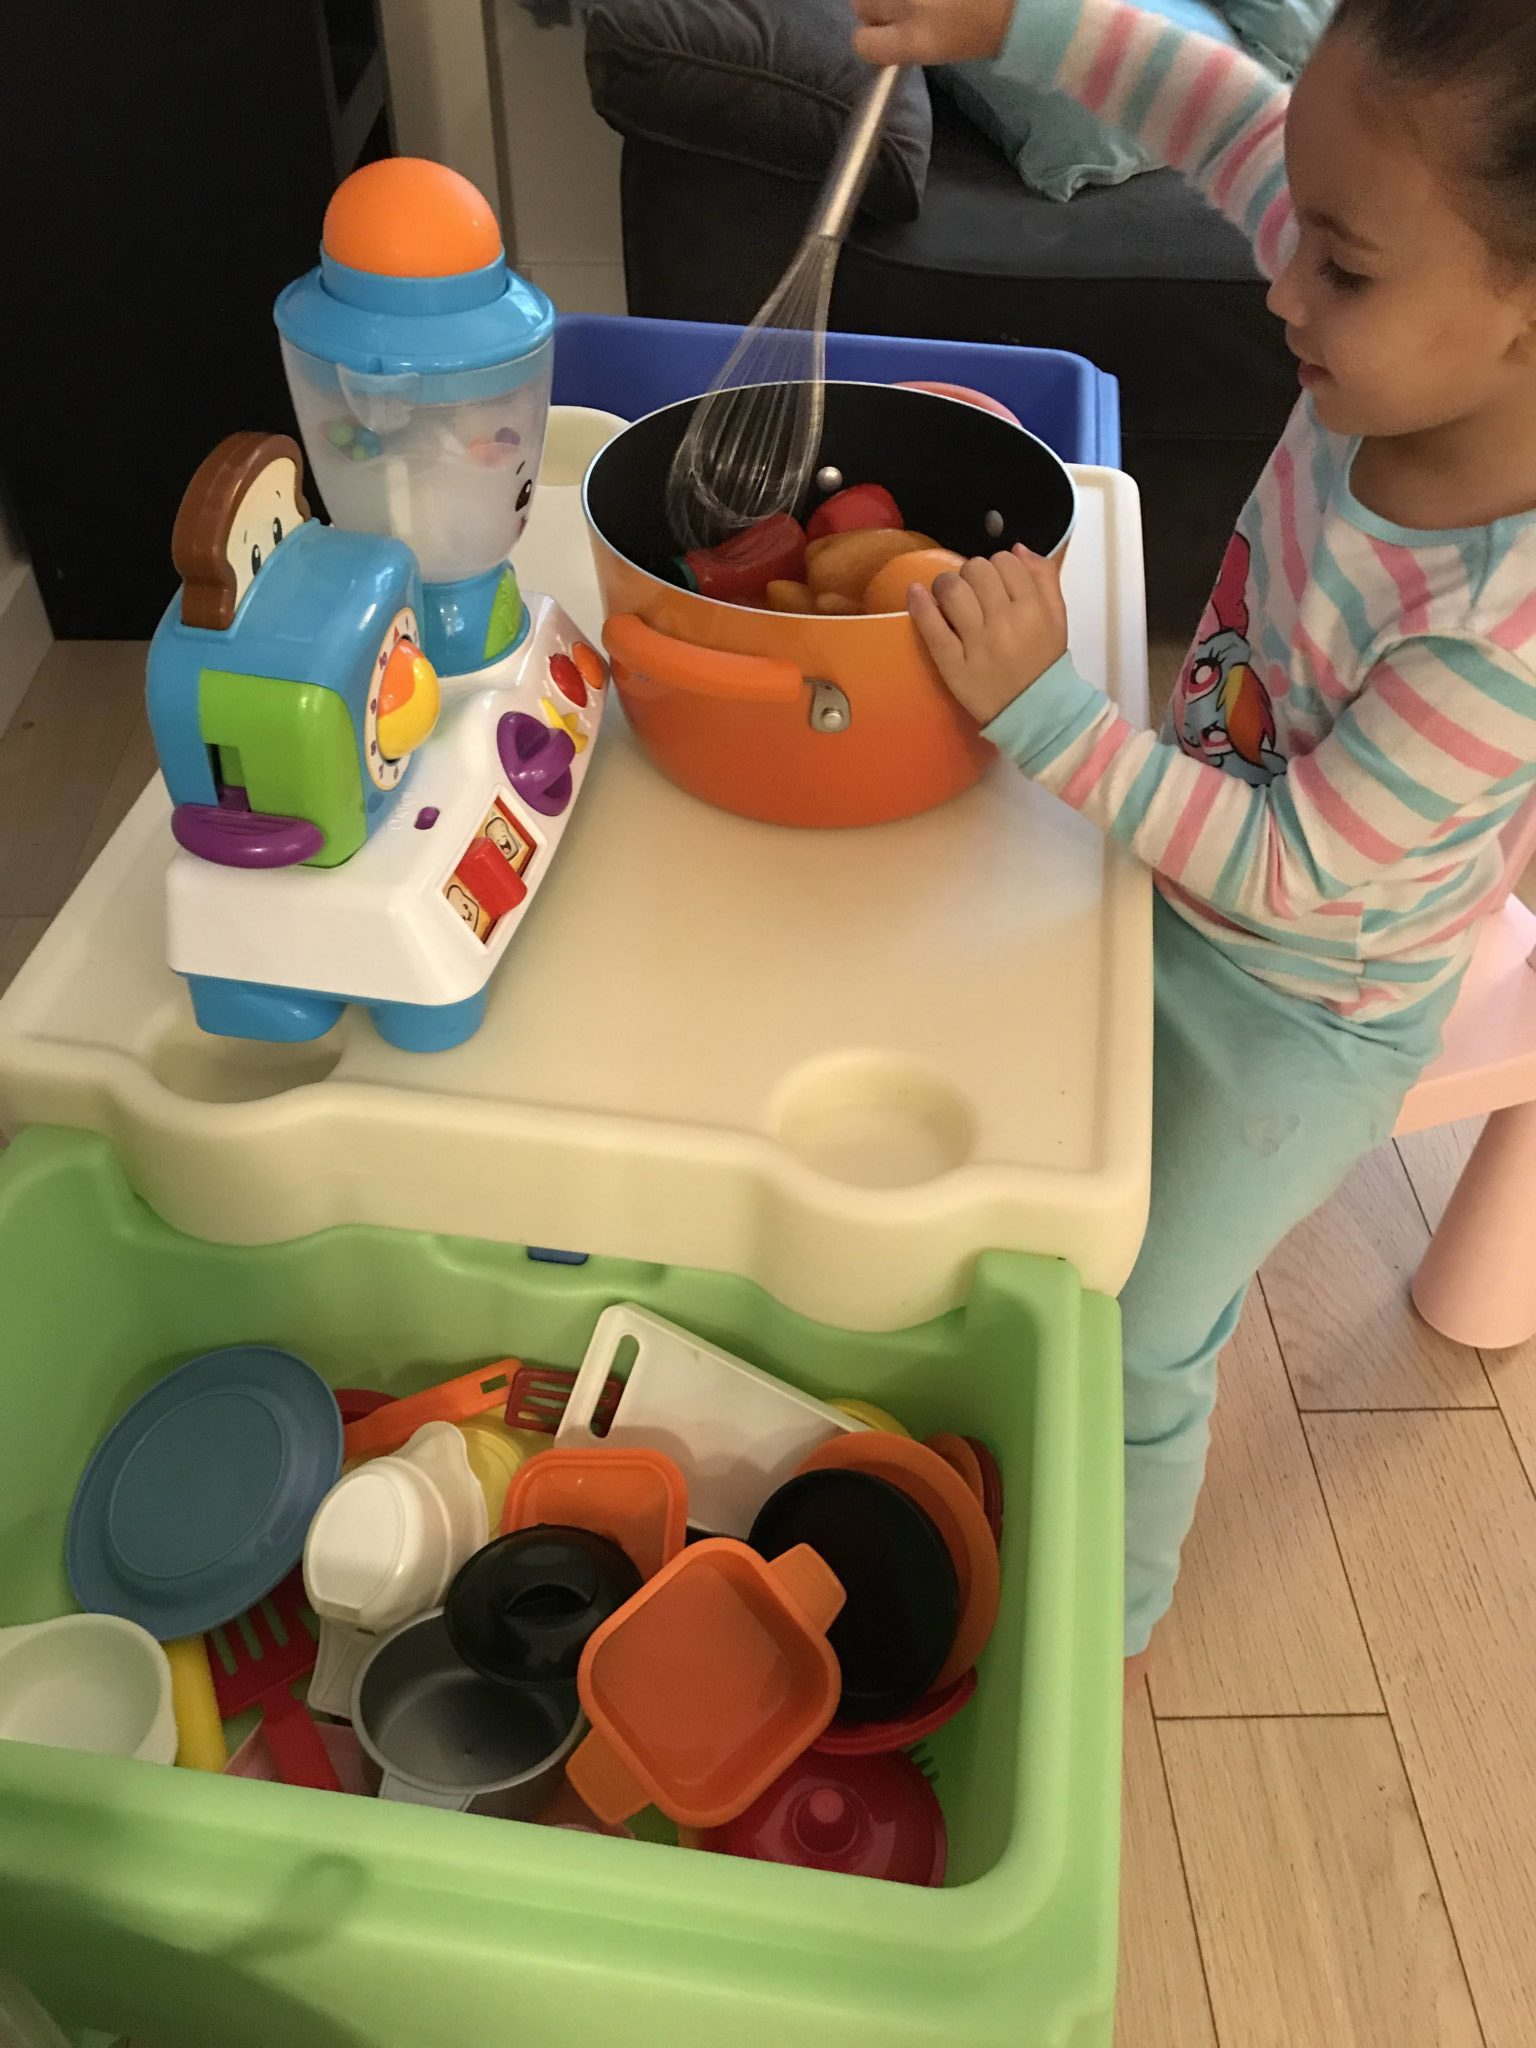 The Simplay3 In and Out Activity Table is a game changer! It offers so many ways to play and everything stays neat and tidy in one place. Sometimes it's a kitchen, other times is so much more. Learn how we use it to play in so many different ways!